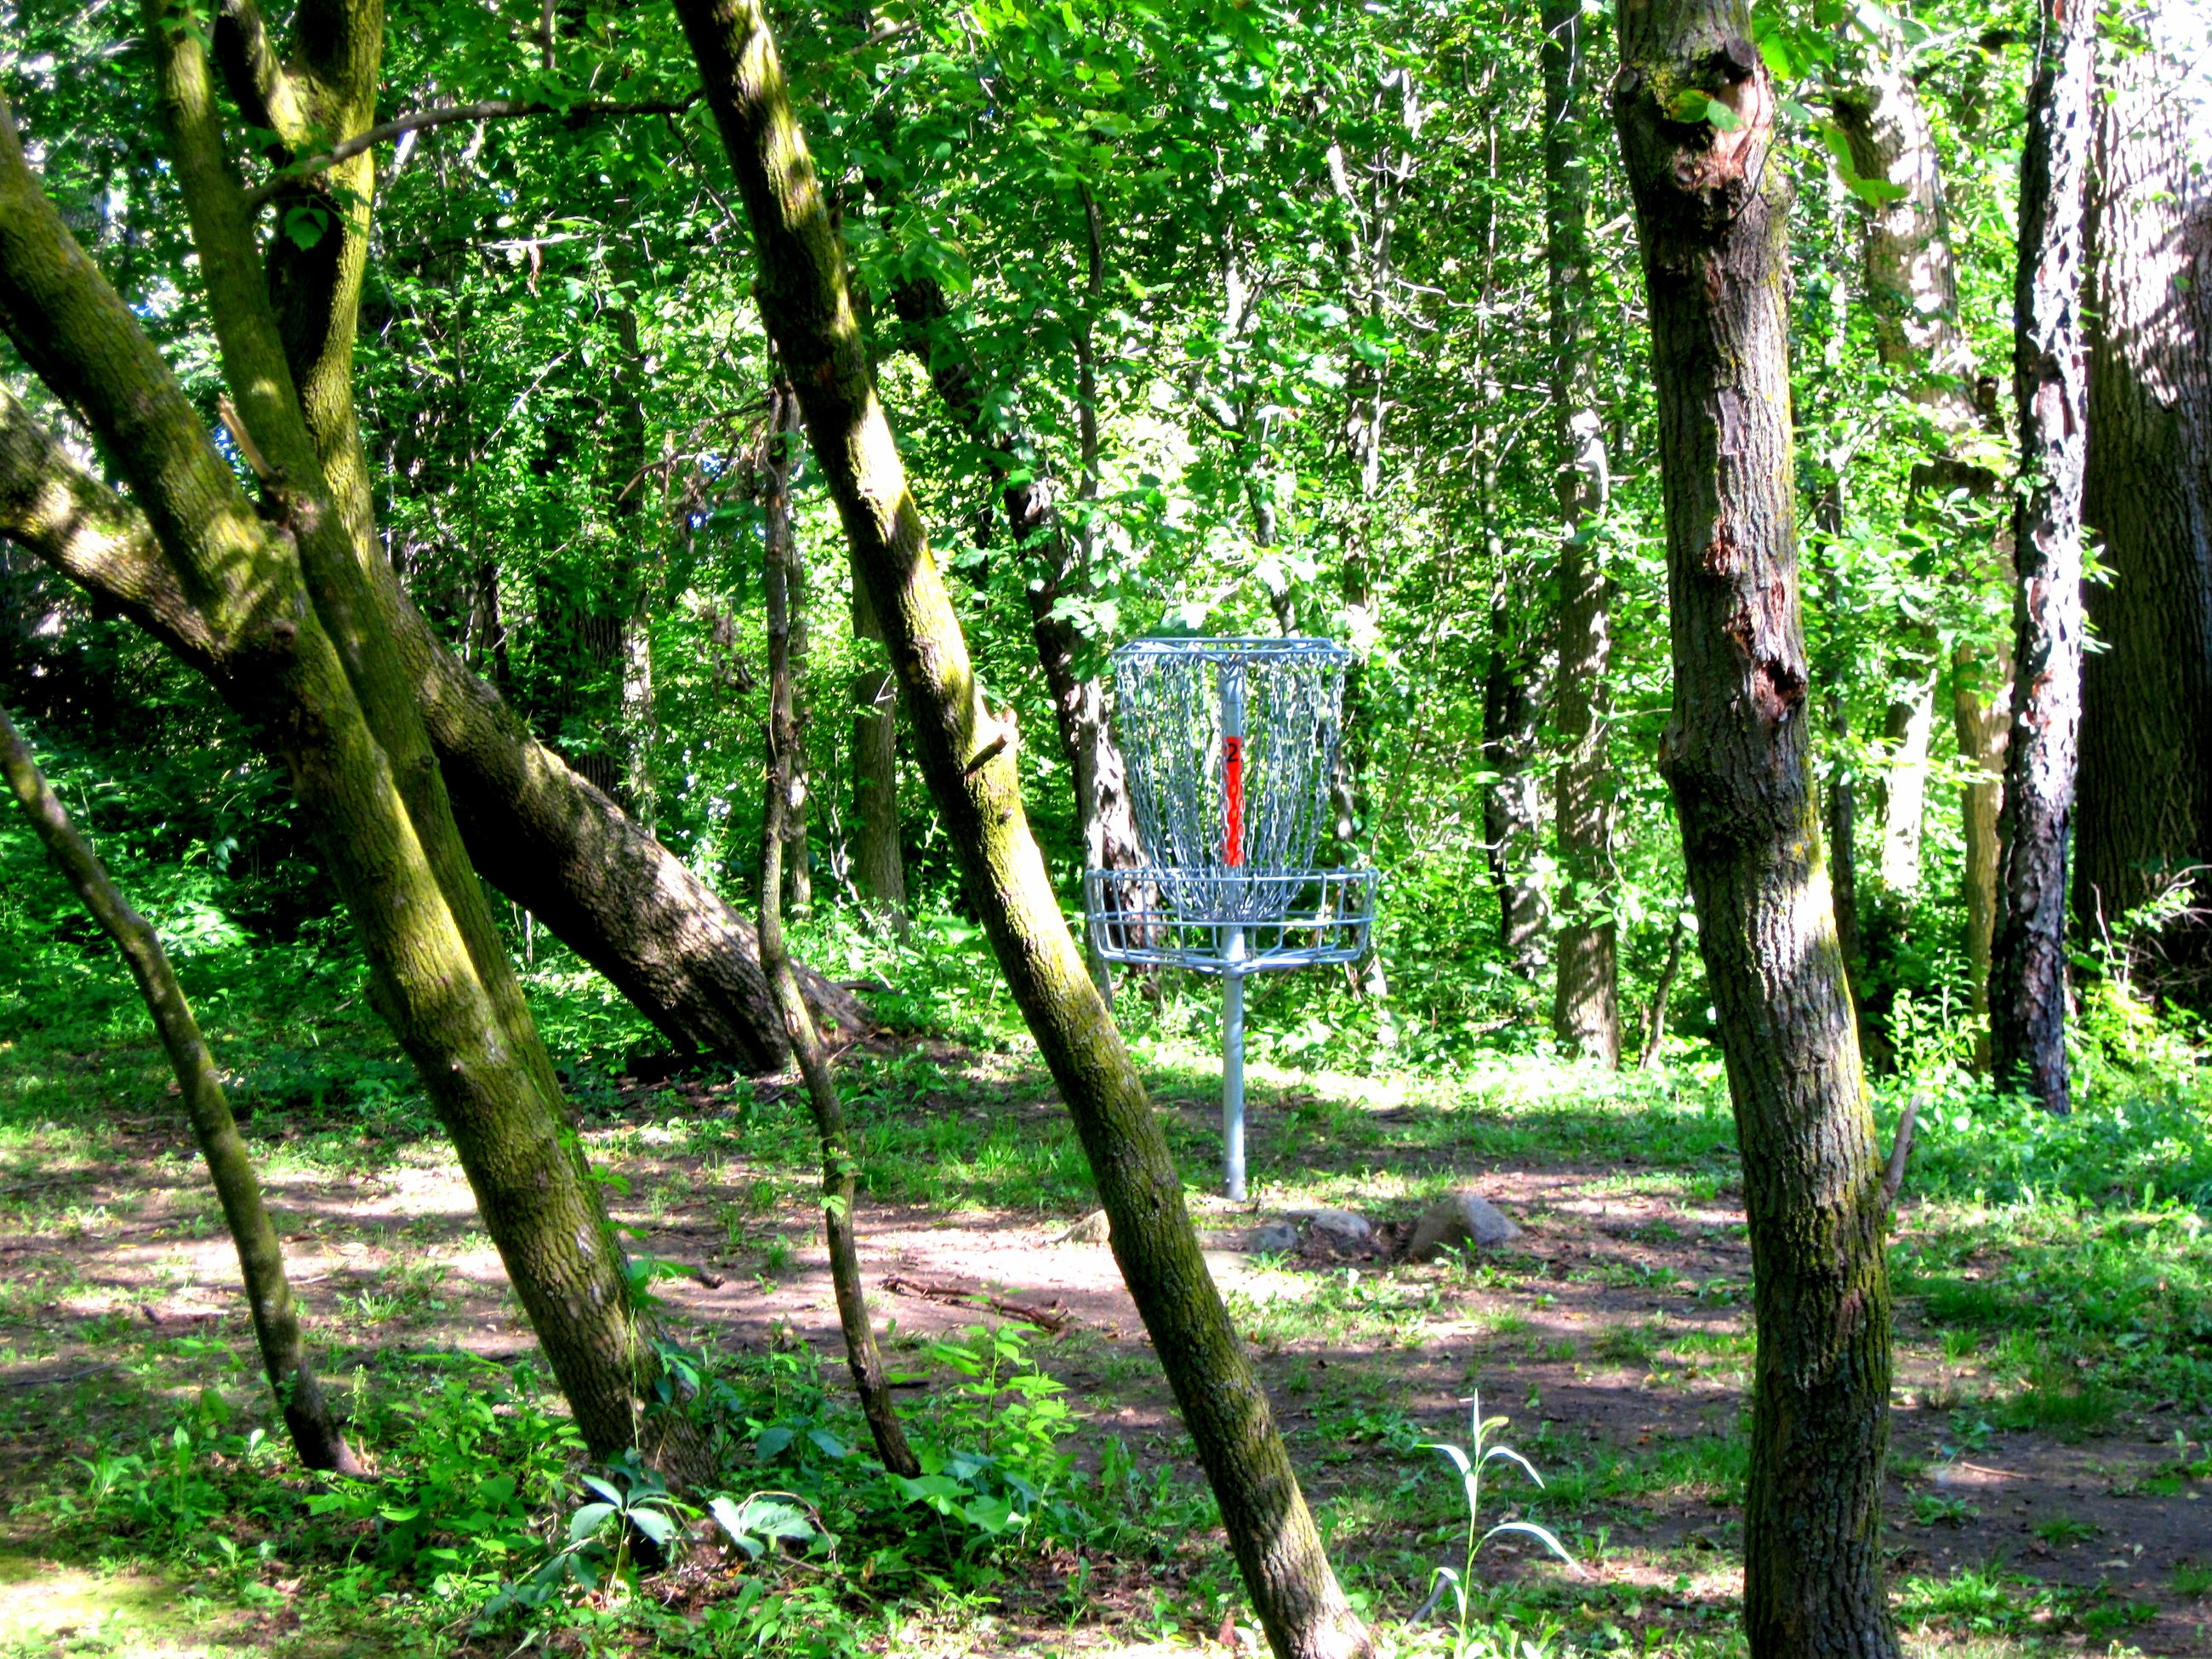 Disc Golf Chains in a Wooded Area